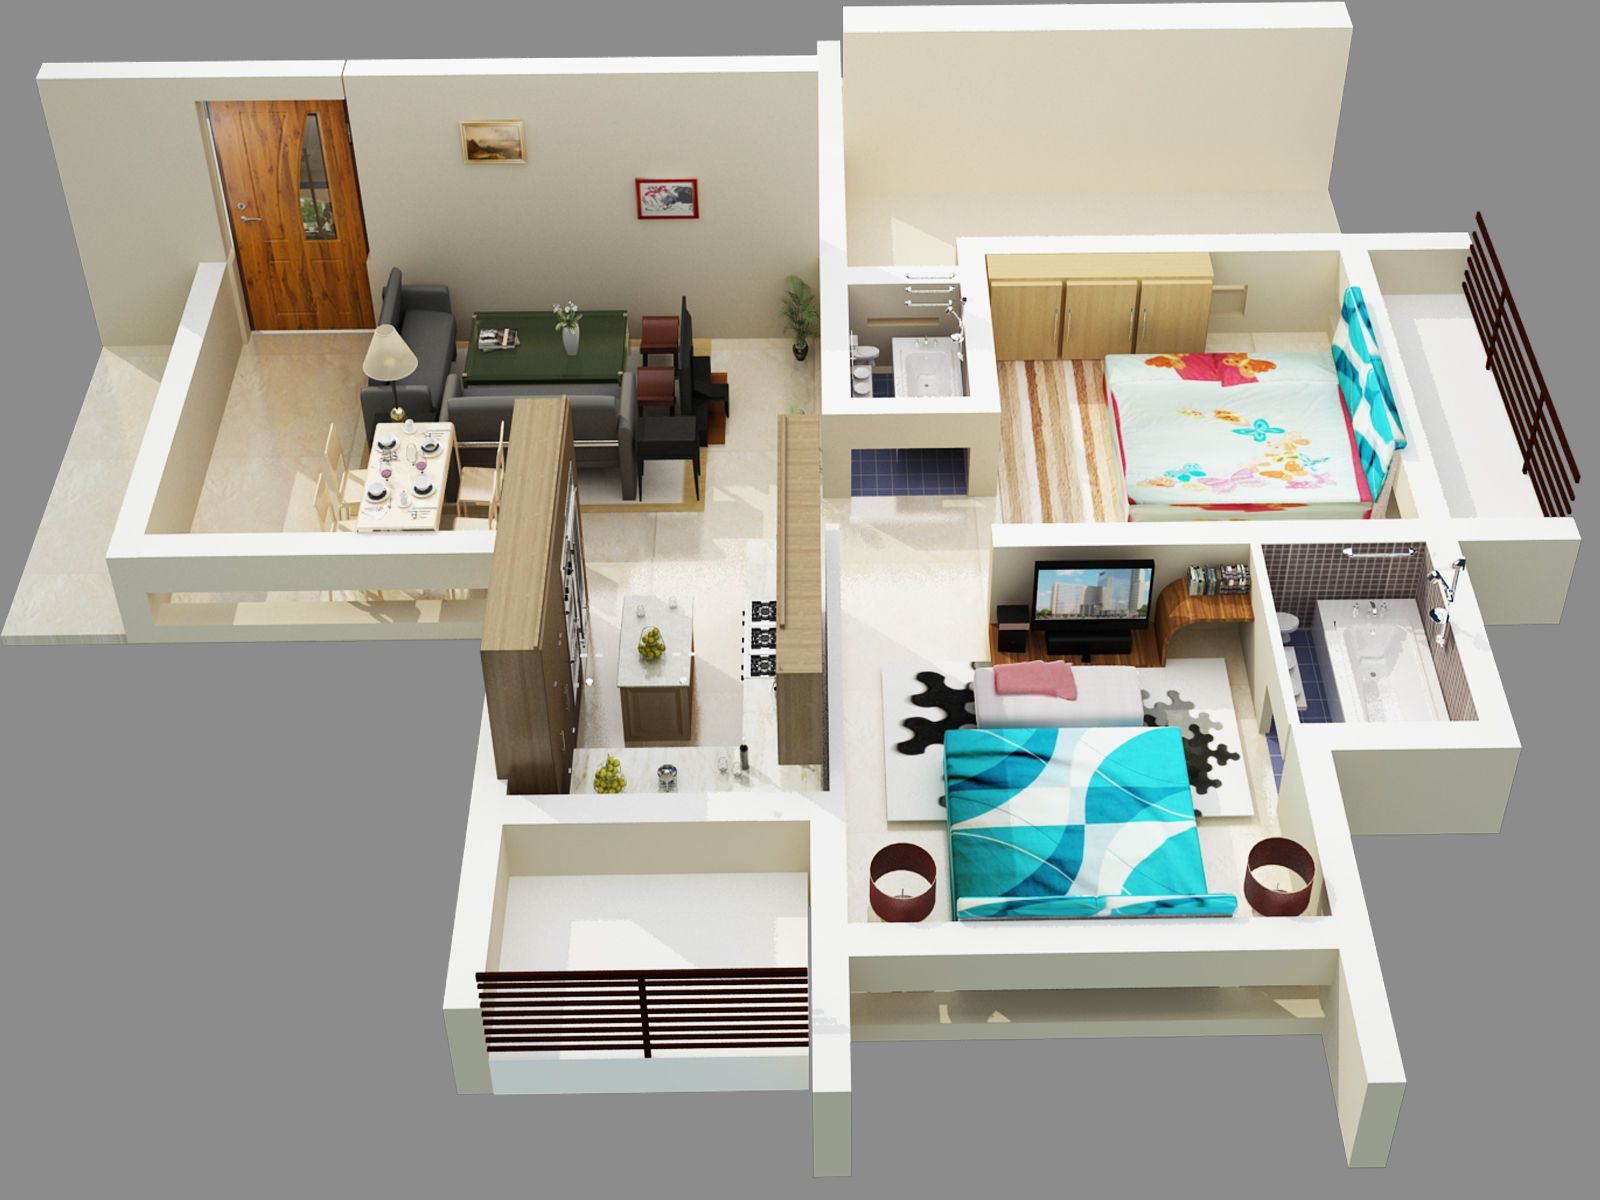 Painting of Floor Plan Drawing Software: Create Your Own Home ...